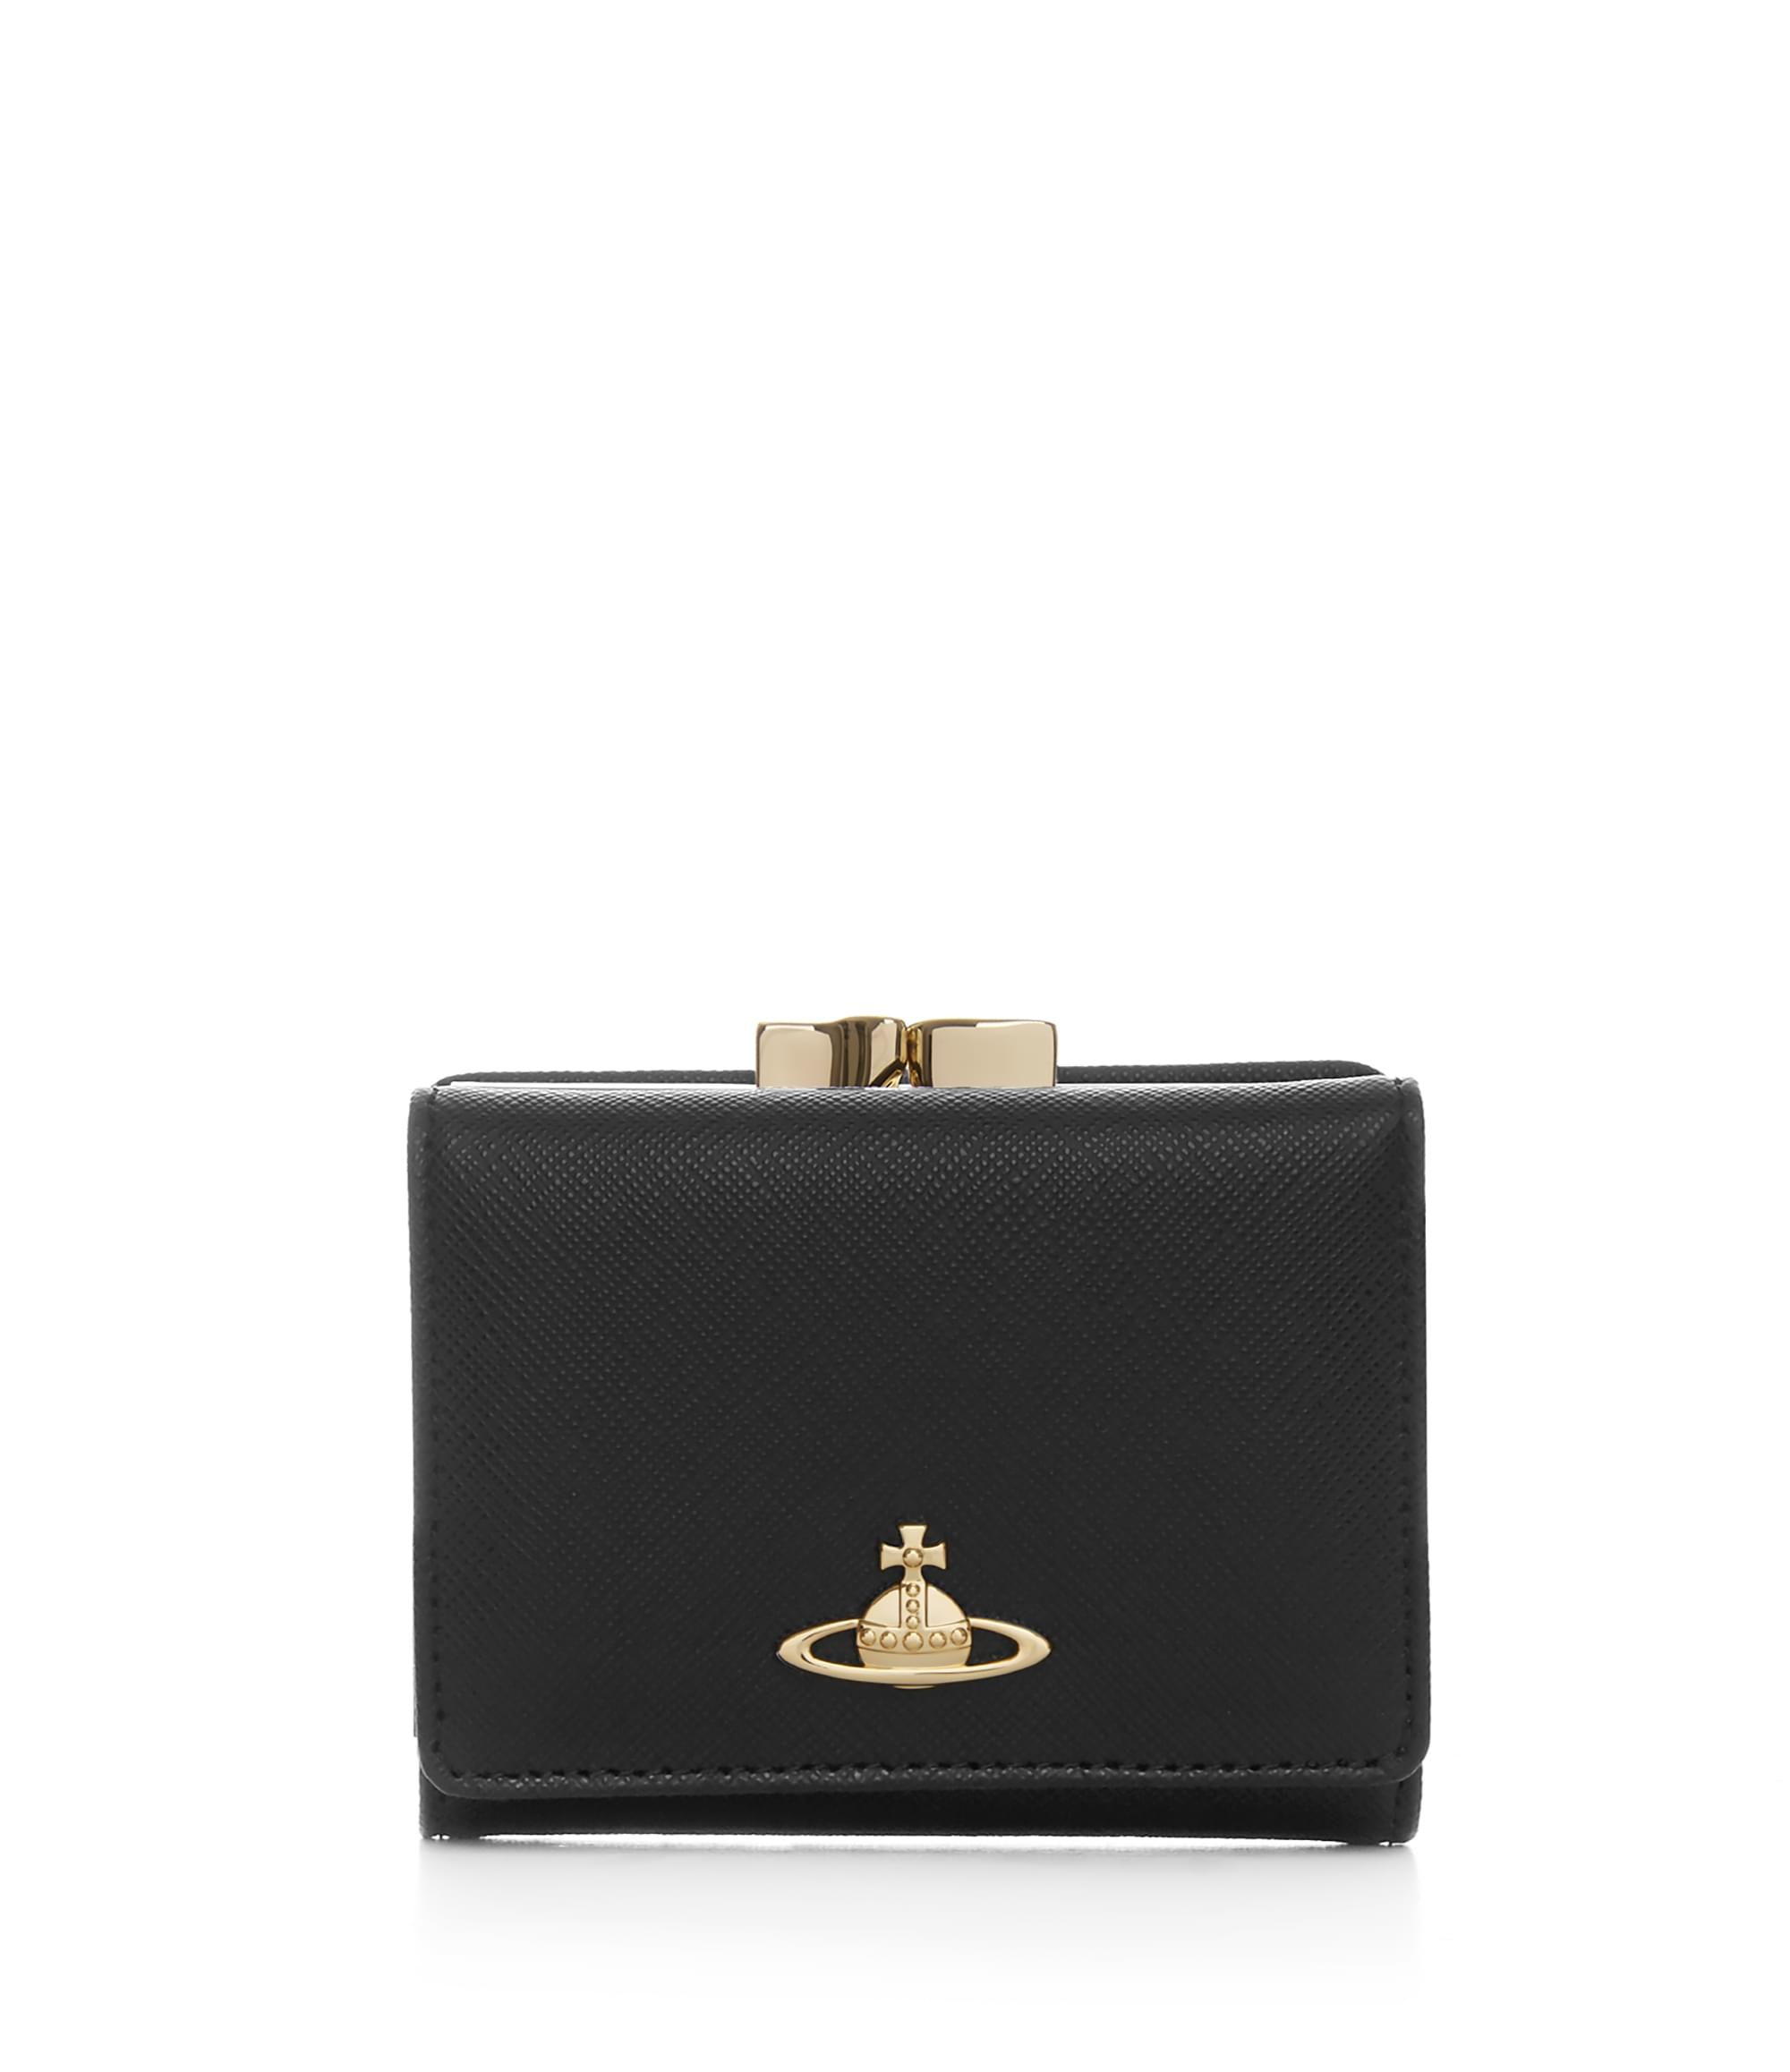 Vivienne Westwood Saffiano Wallet With Coin Pocket 51010001 Blac